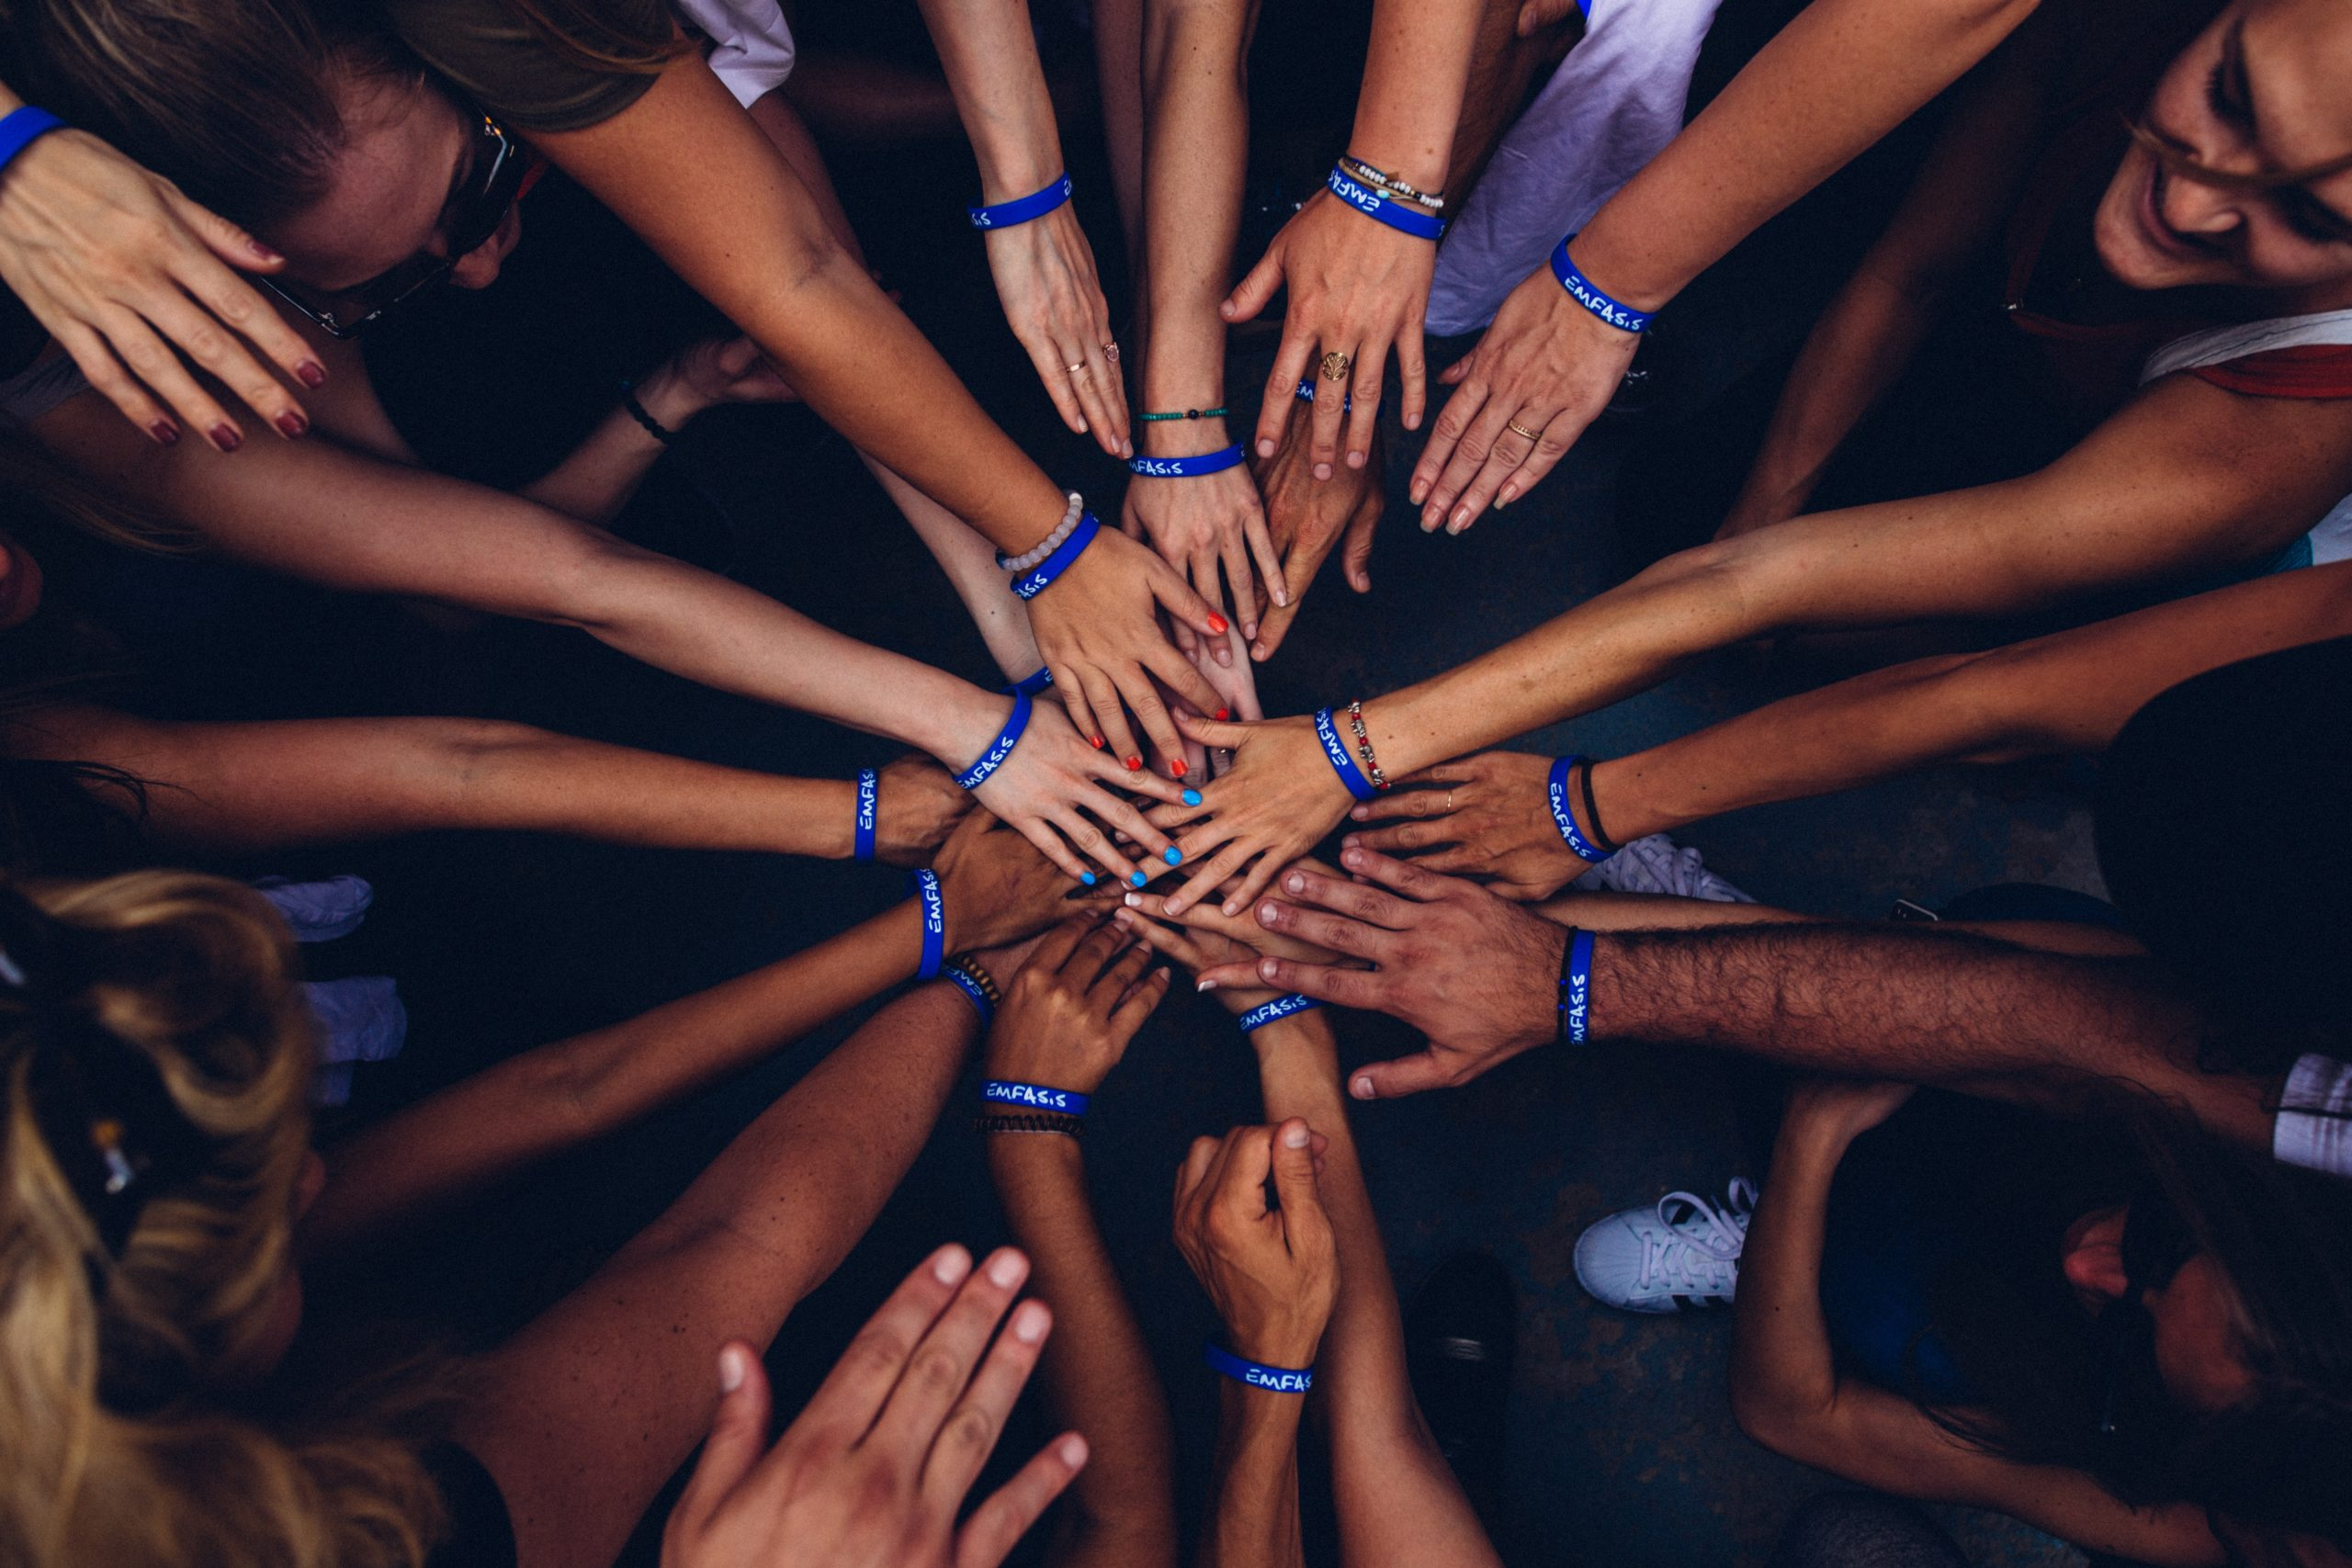 image of group of people putting their hands together in support